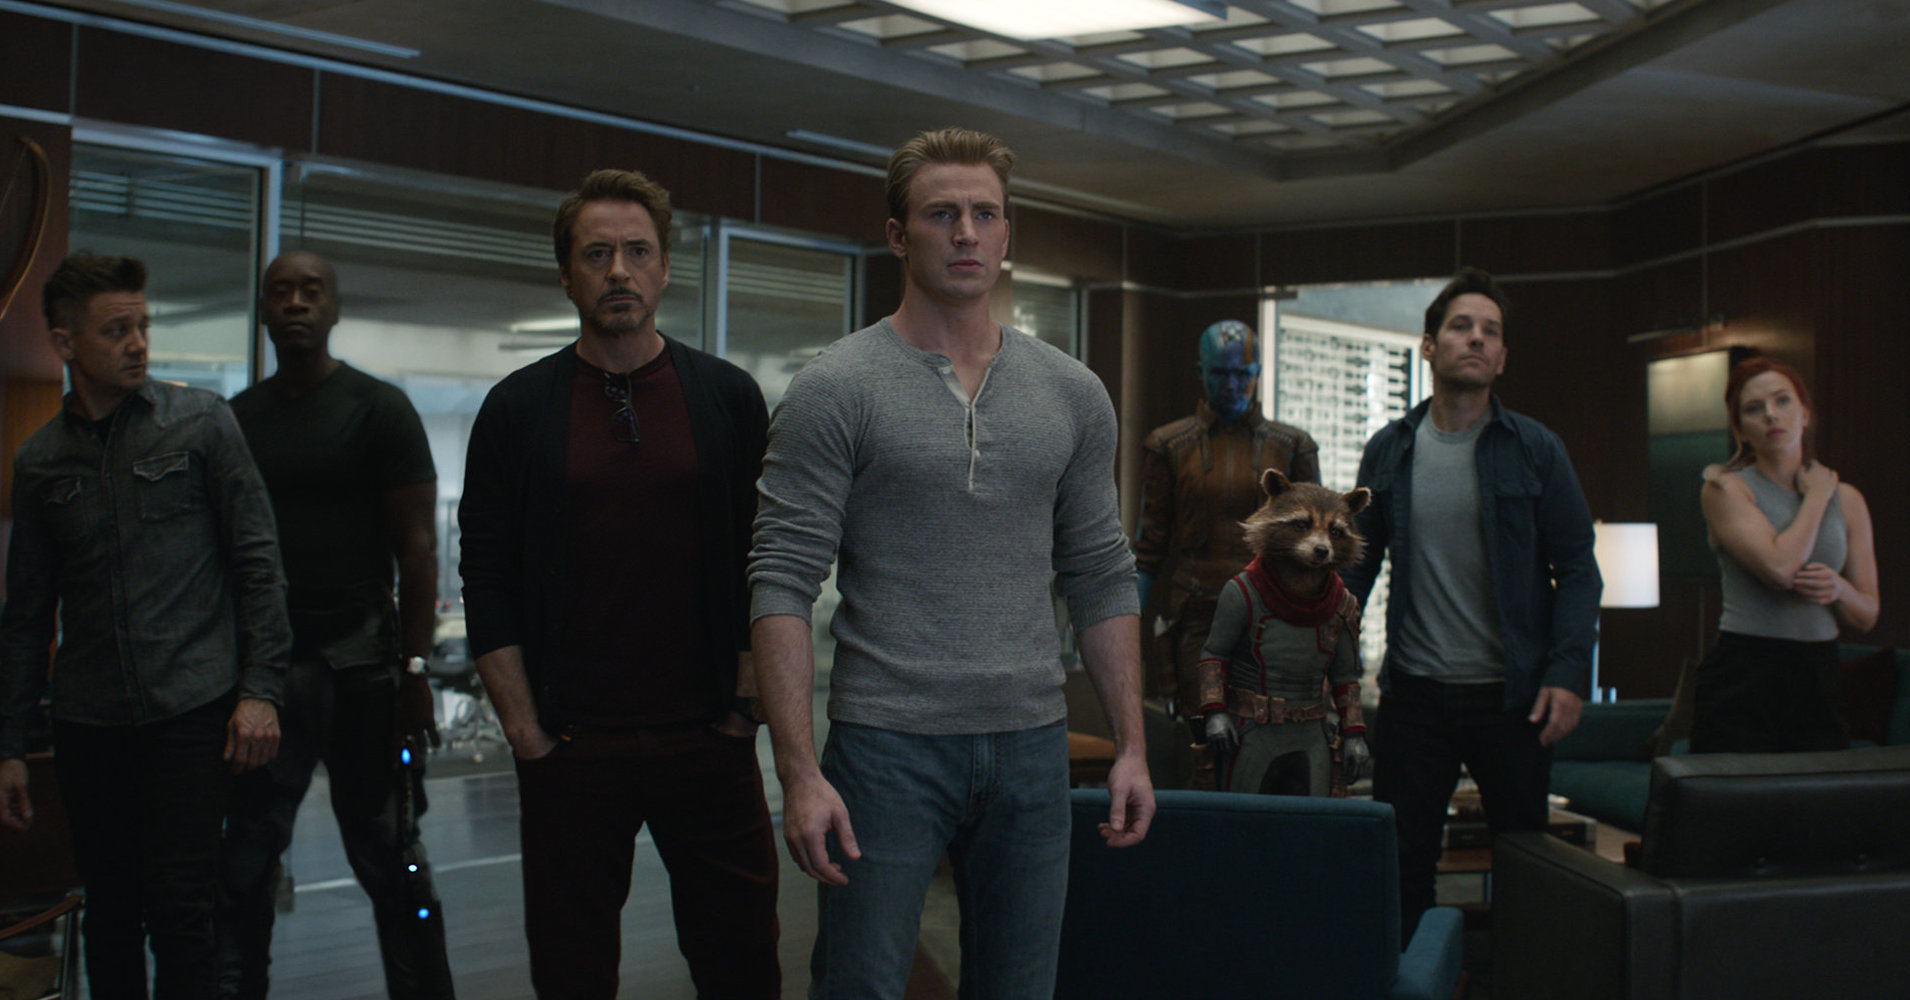 'Avengers: Endgame' Is Like Graduation Day: Satisfying, Nostalgic And Long As Hell